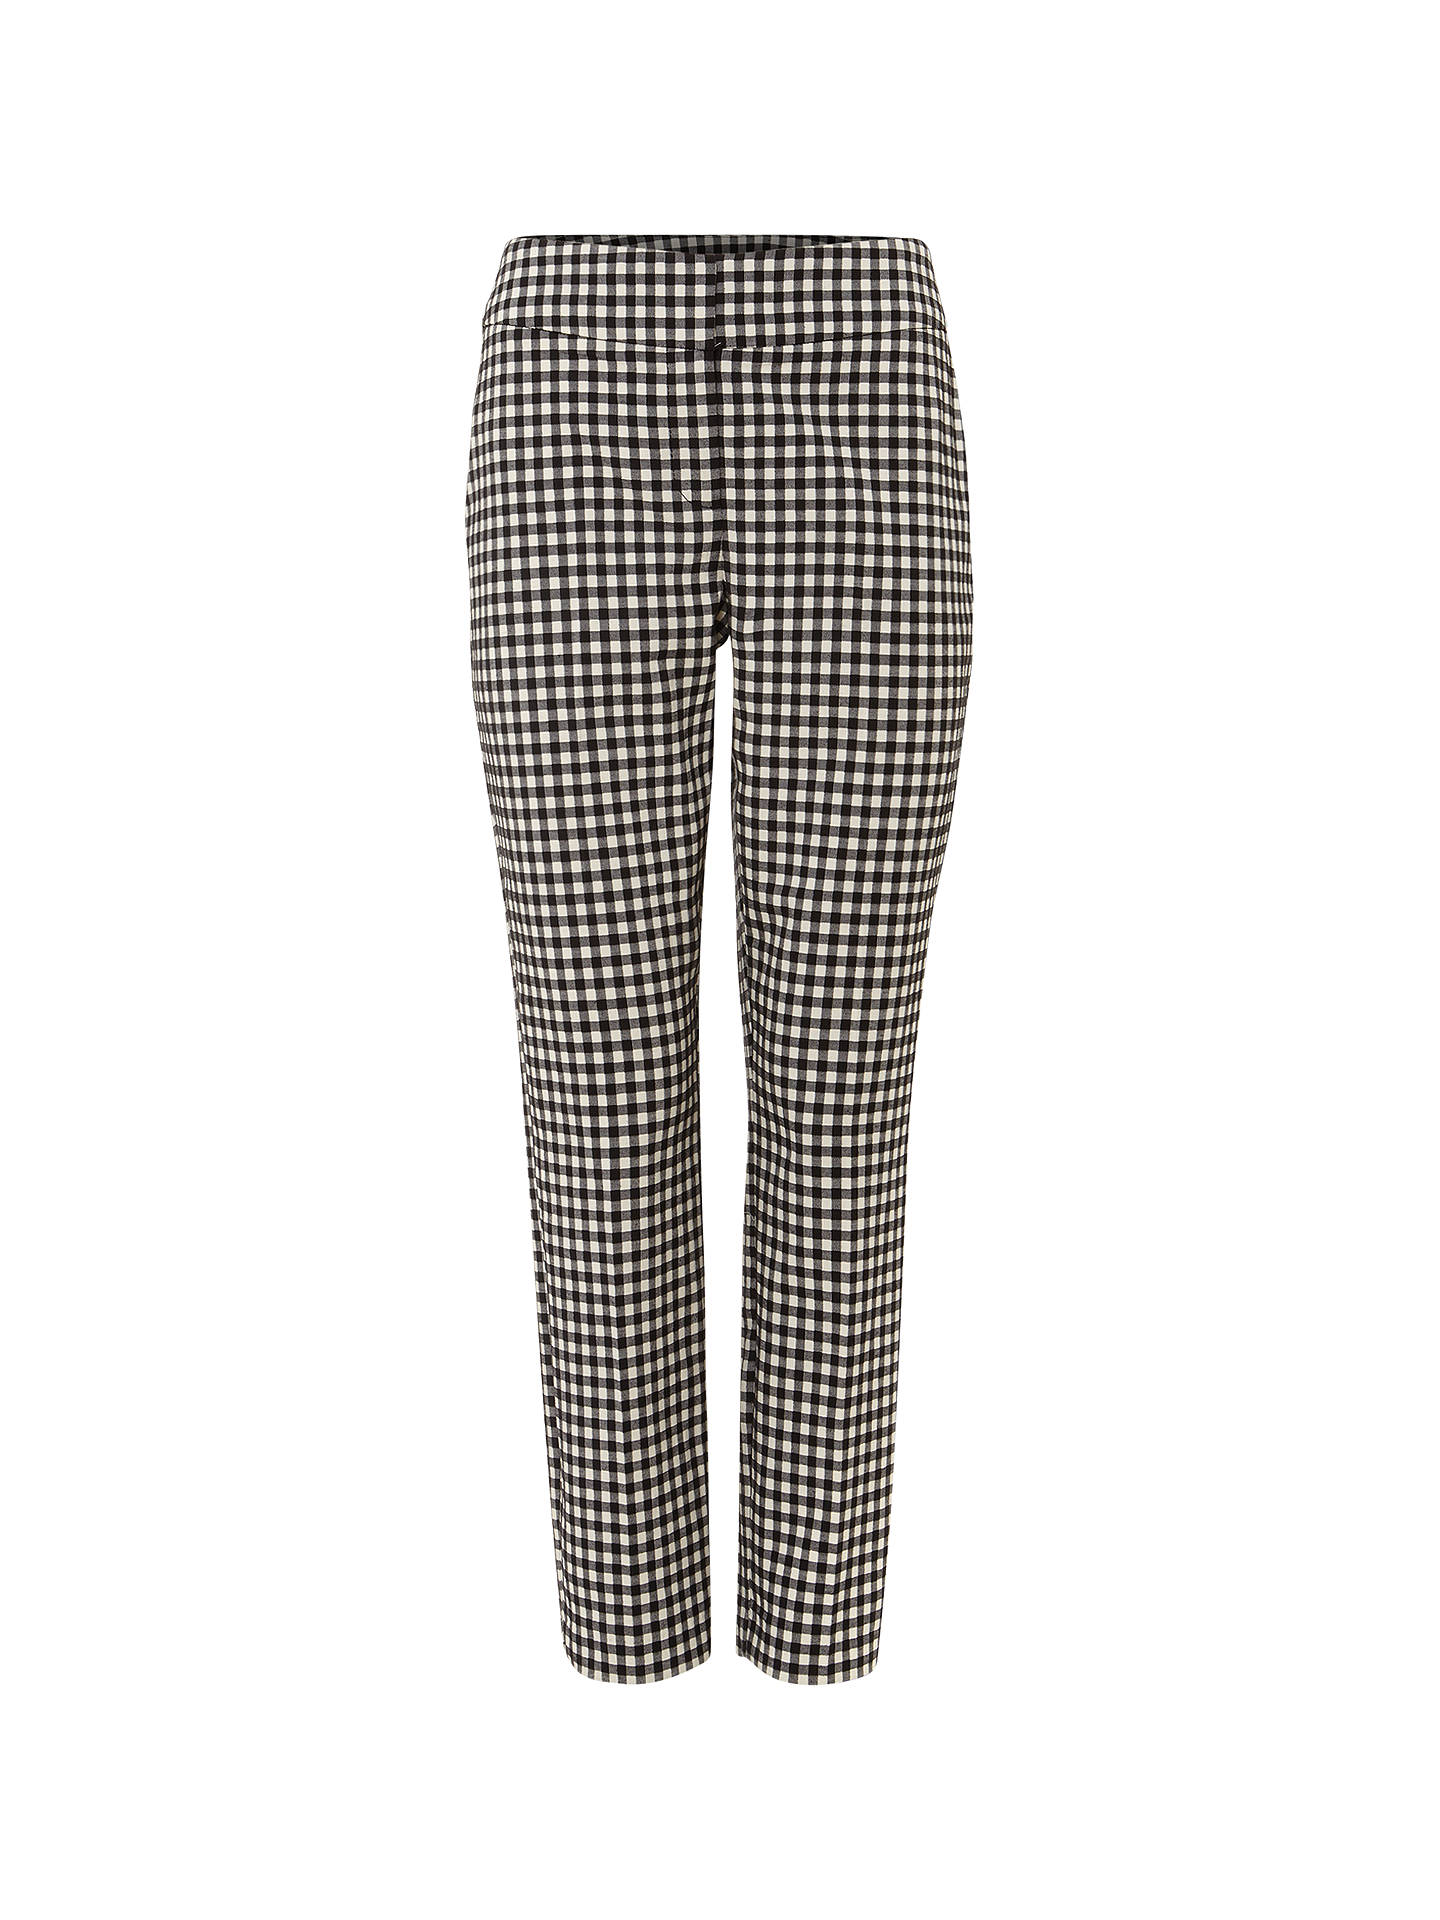 BuyPhase Eight Tyna Gingham Trousers, Black/Ivory, 10 Online at johnlewis.com